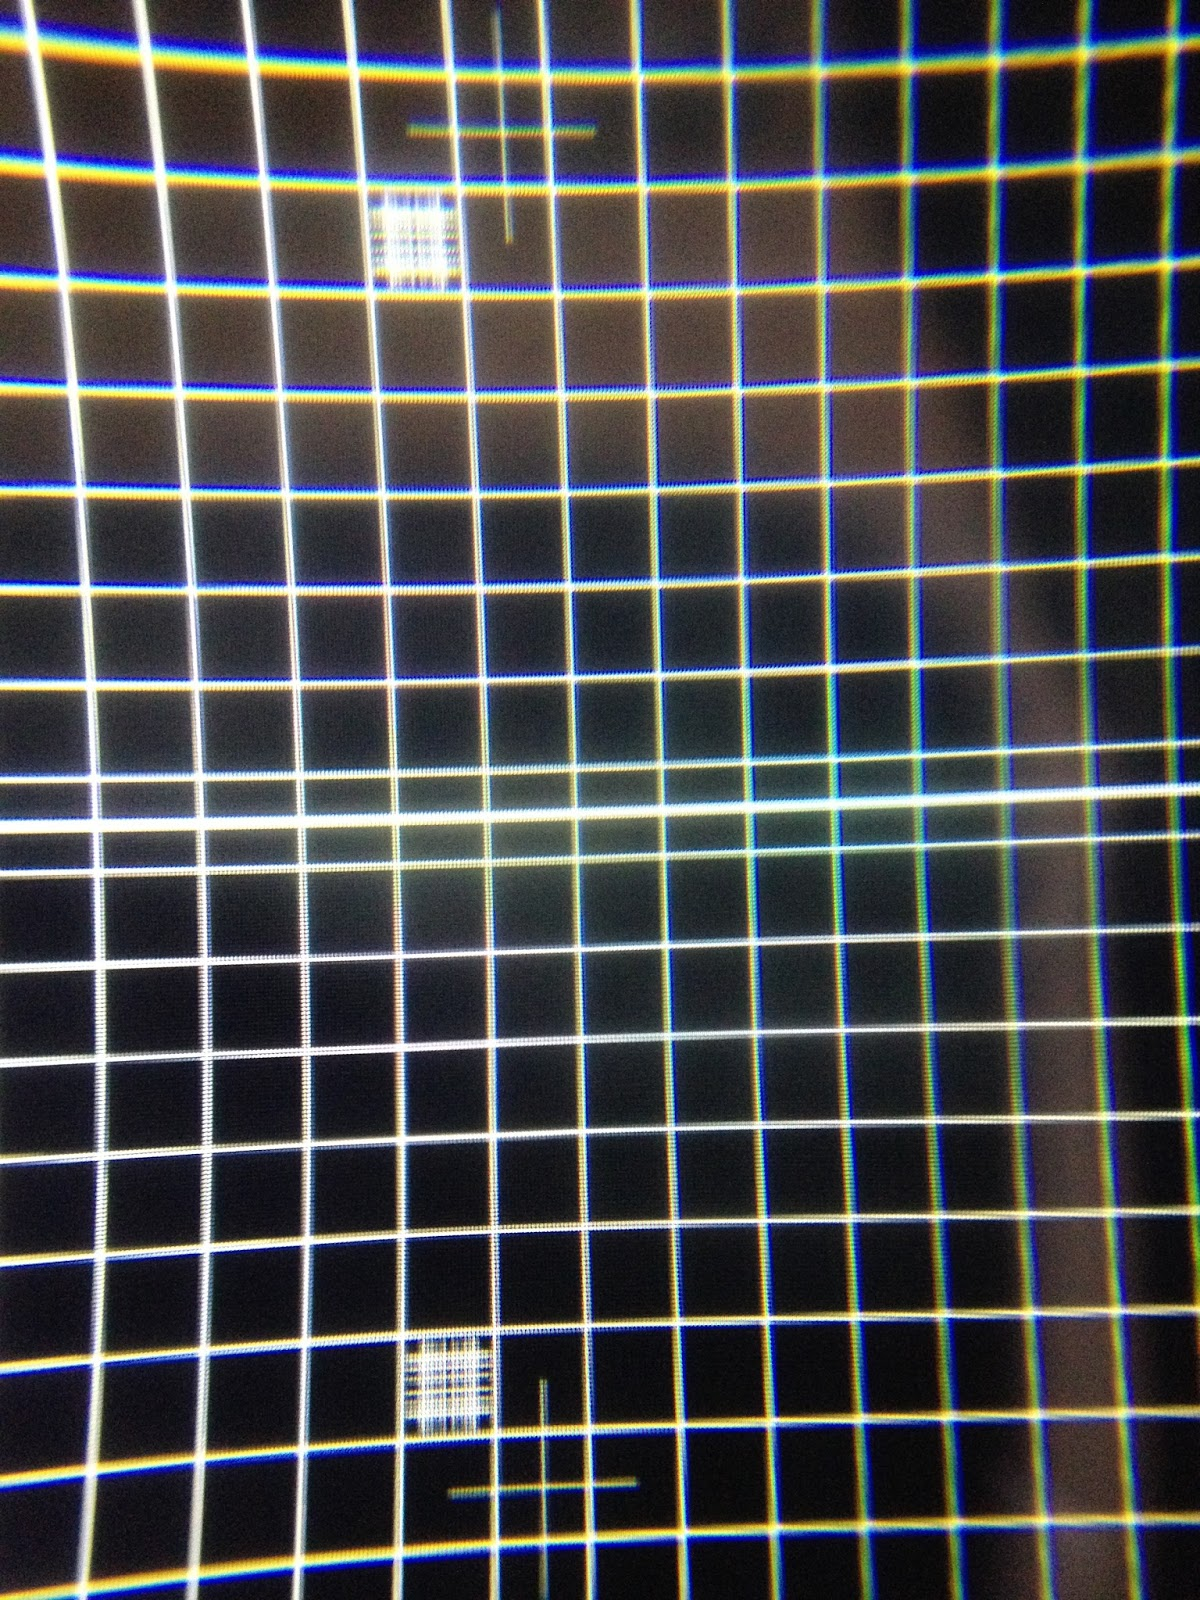 The VRguy's Blog: What is Geometric Distortion (and Why